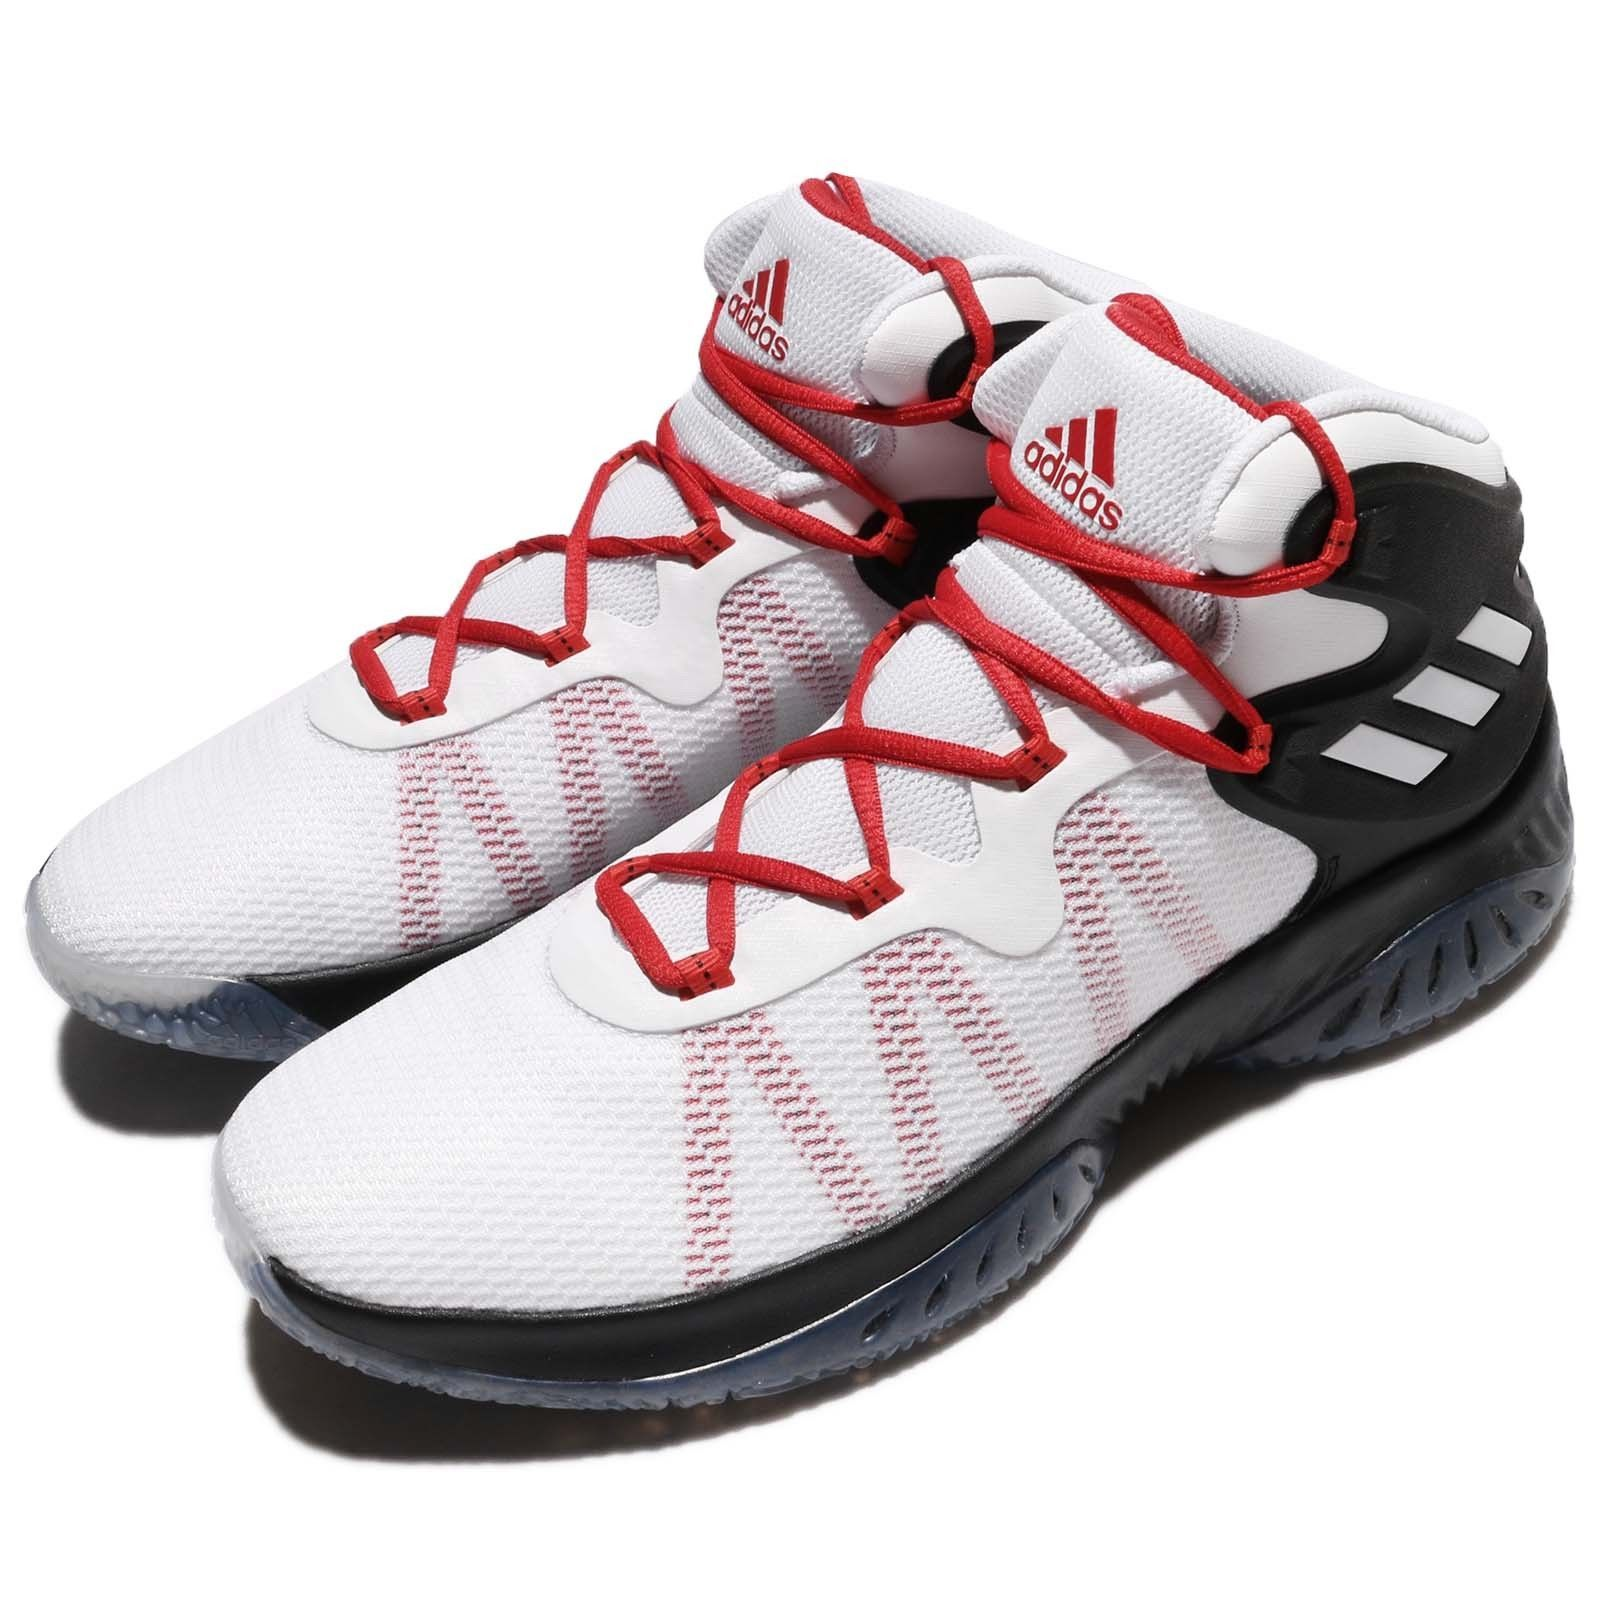 jordan shoes price 120 $ pairing jawbone 806170